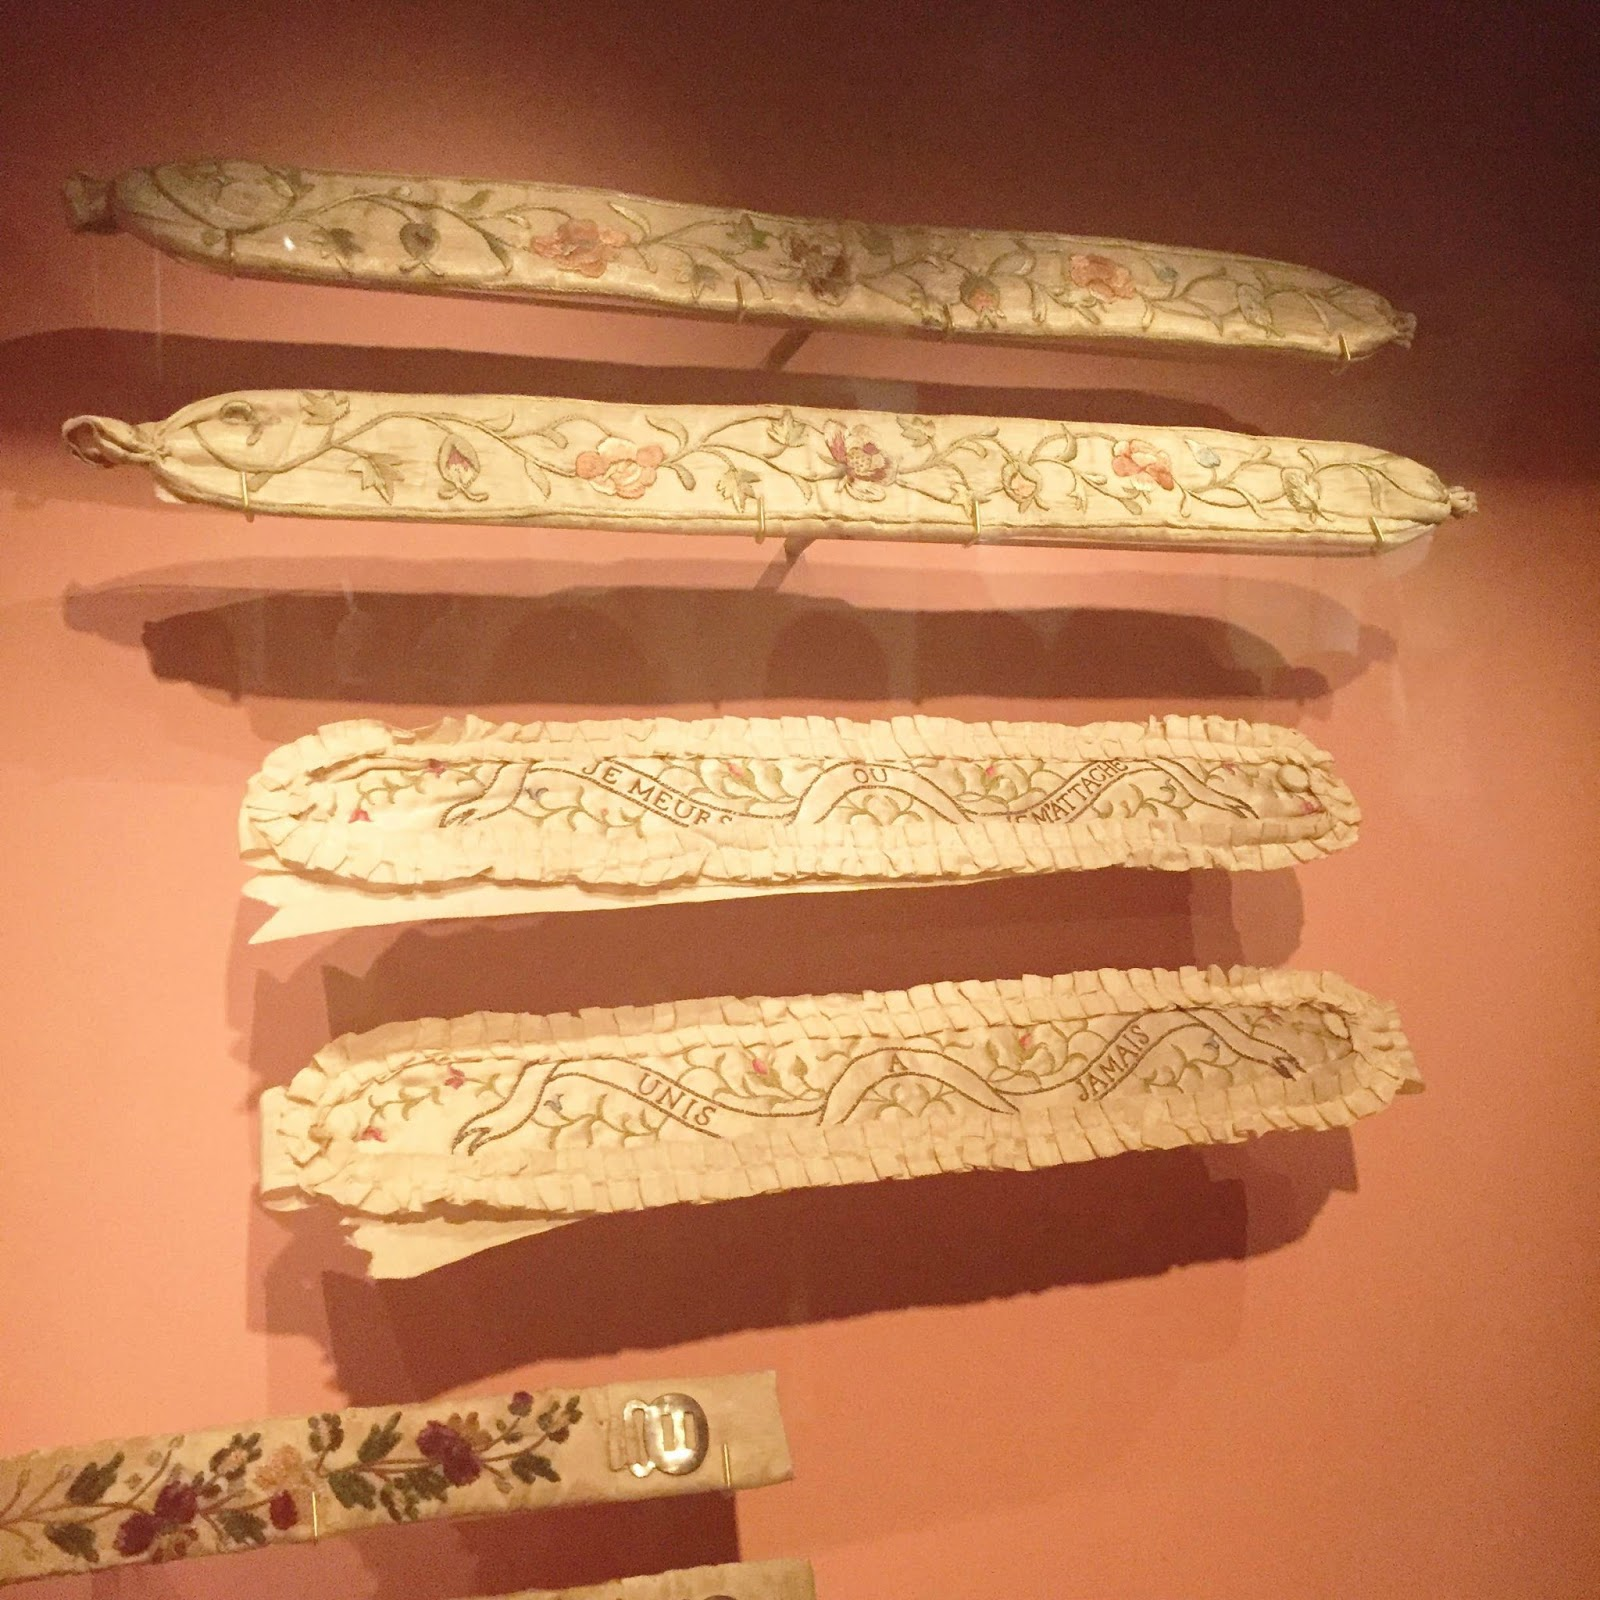 Garter from the 19th century fashion exhibition